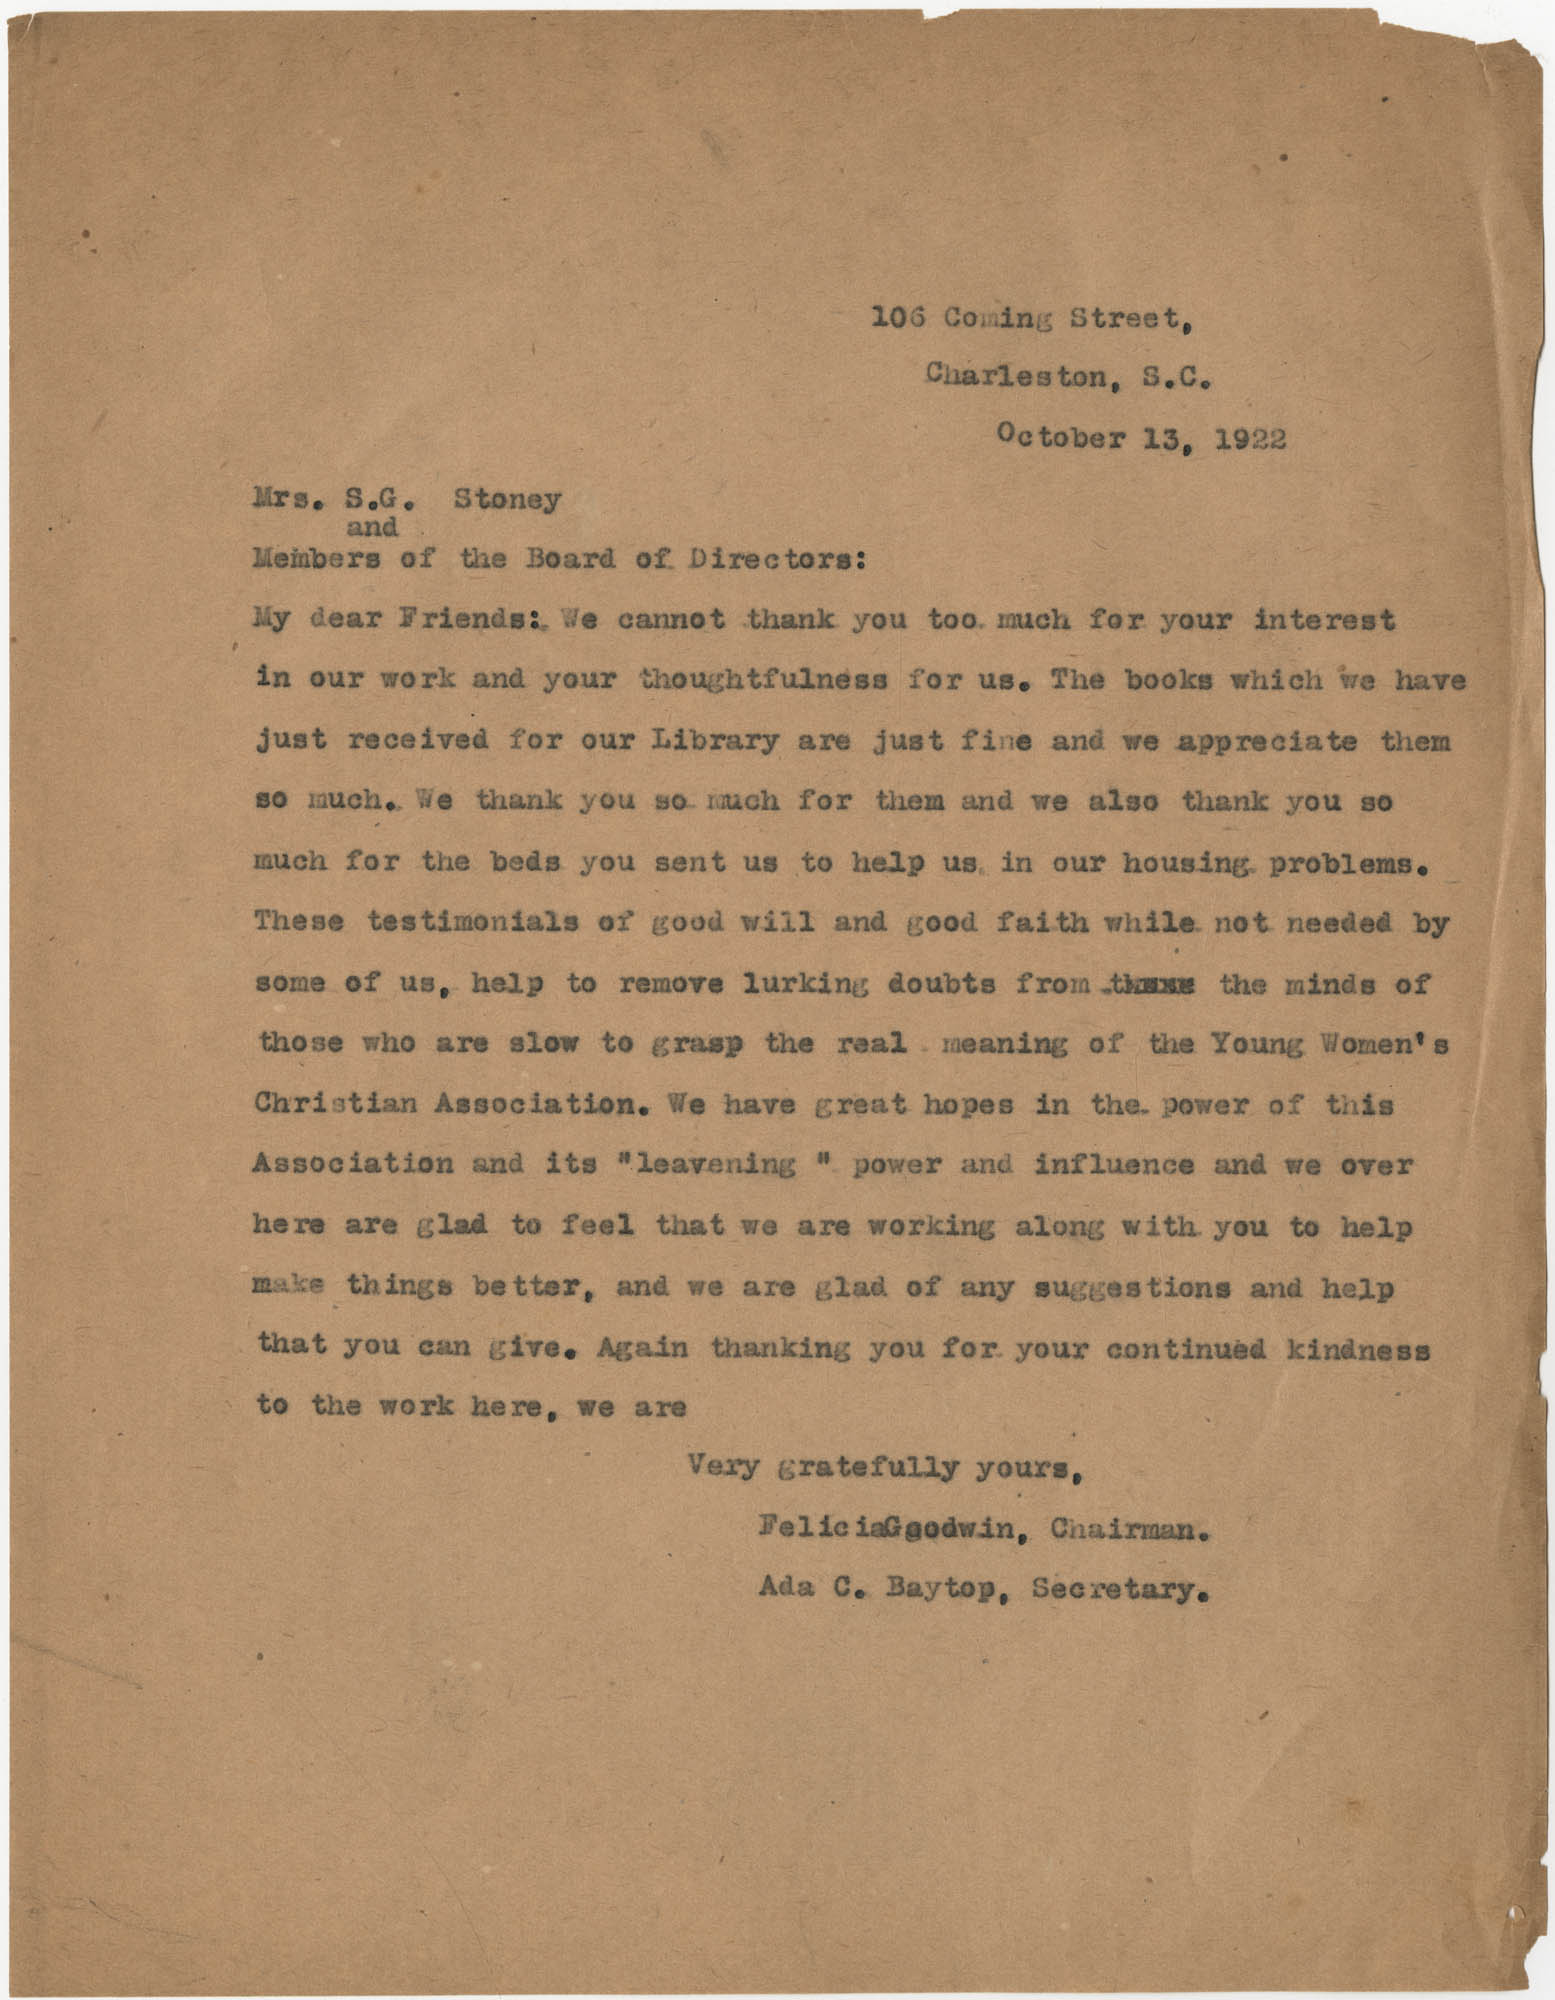 Letter from Felicia Goodwin and Ada C. Baytop to S. G. Stoney, October 13, 1922